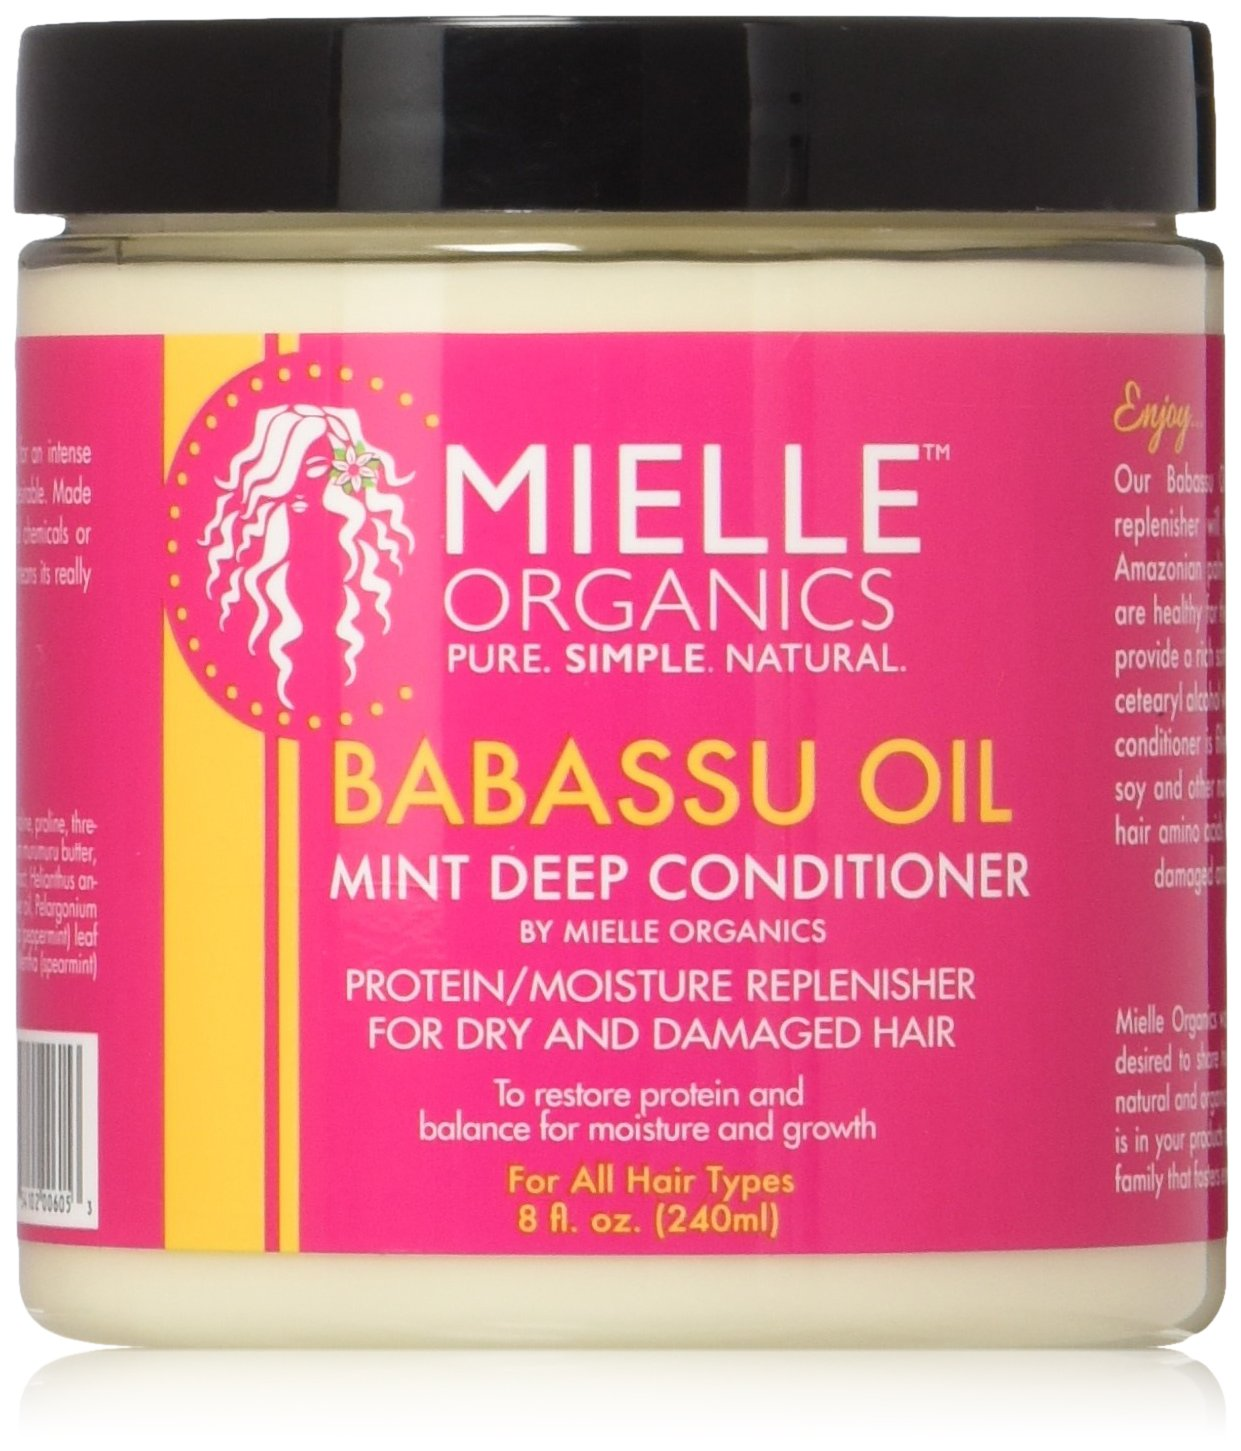 Babassu Oil And Mint Deep Conditioner